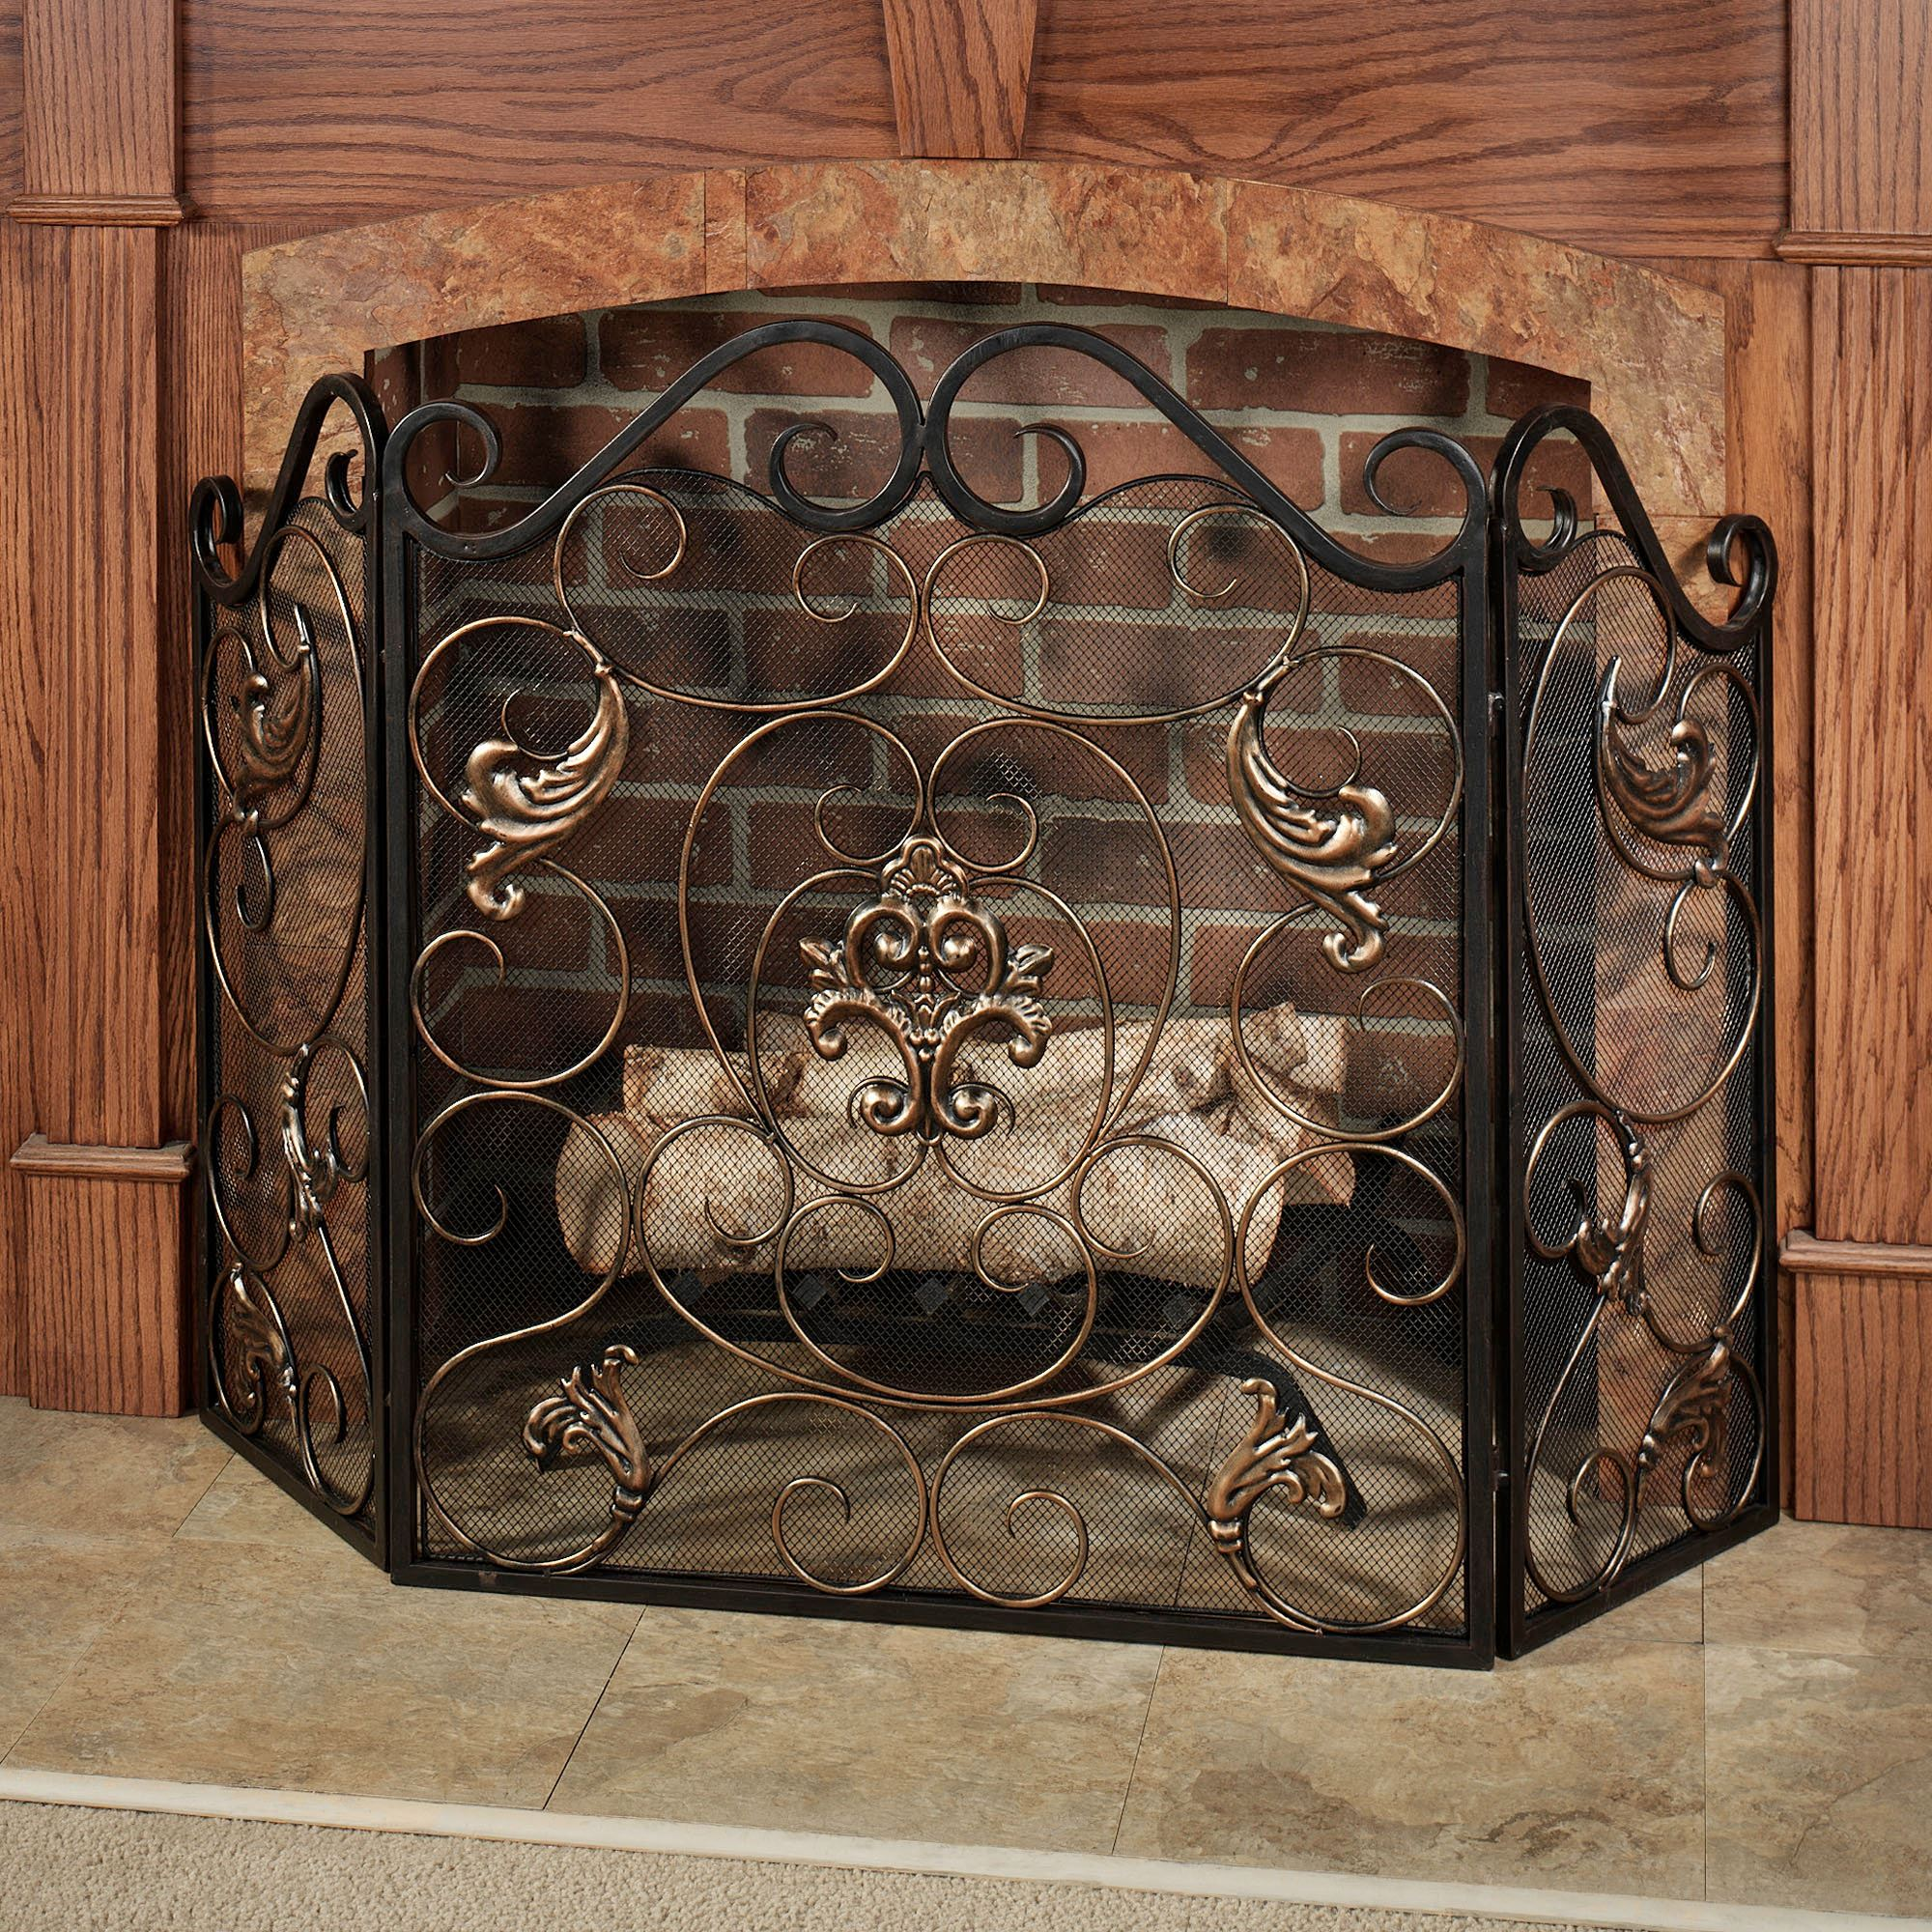 Add to your decor with the charming Taleisin Scroll Metal Fireplace Screen. This exquisite metal fireplace screen features a traditional swirling scroll...